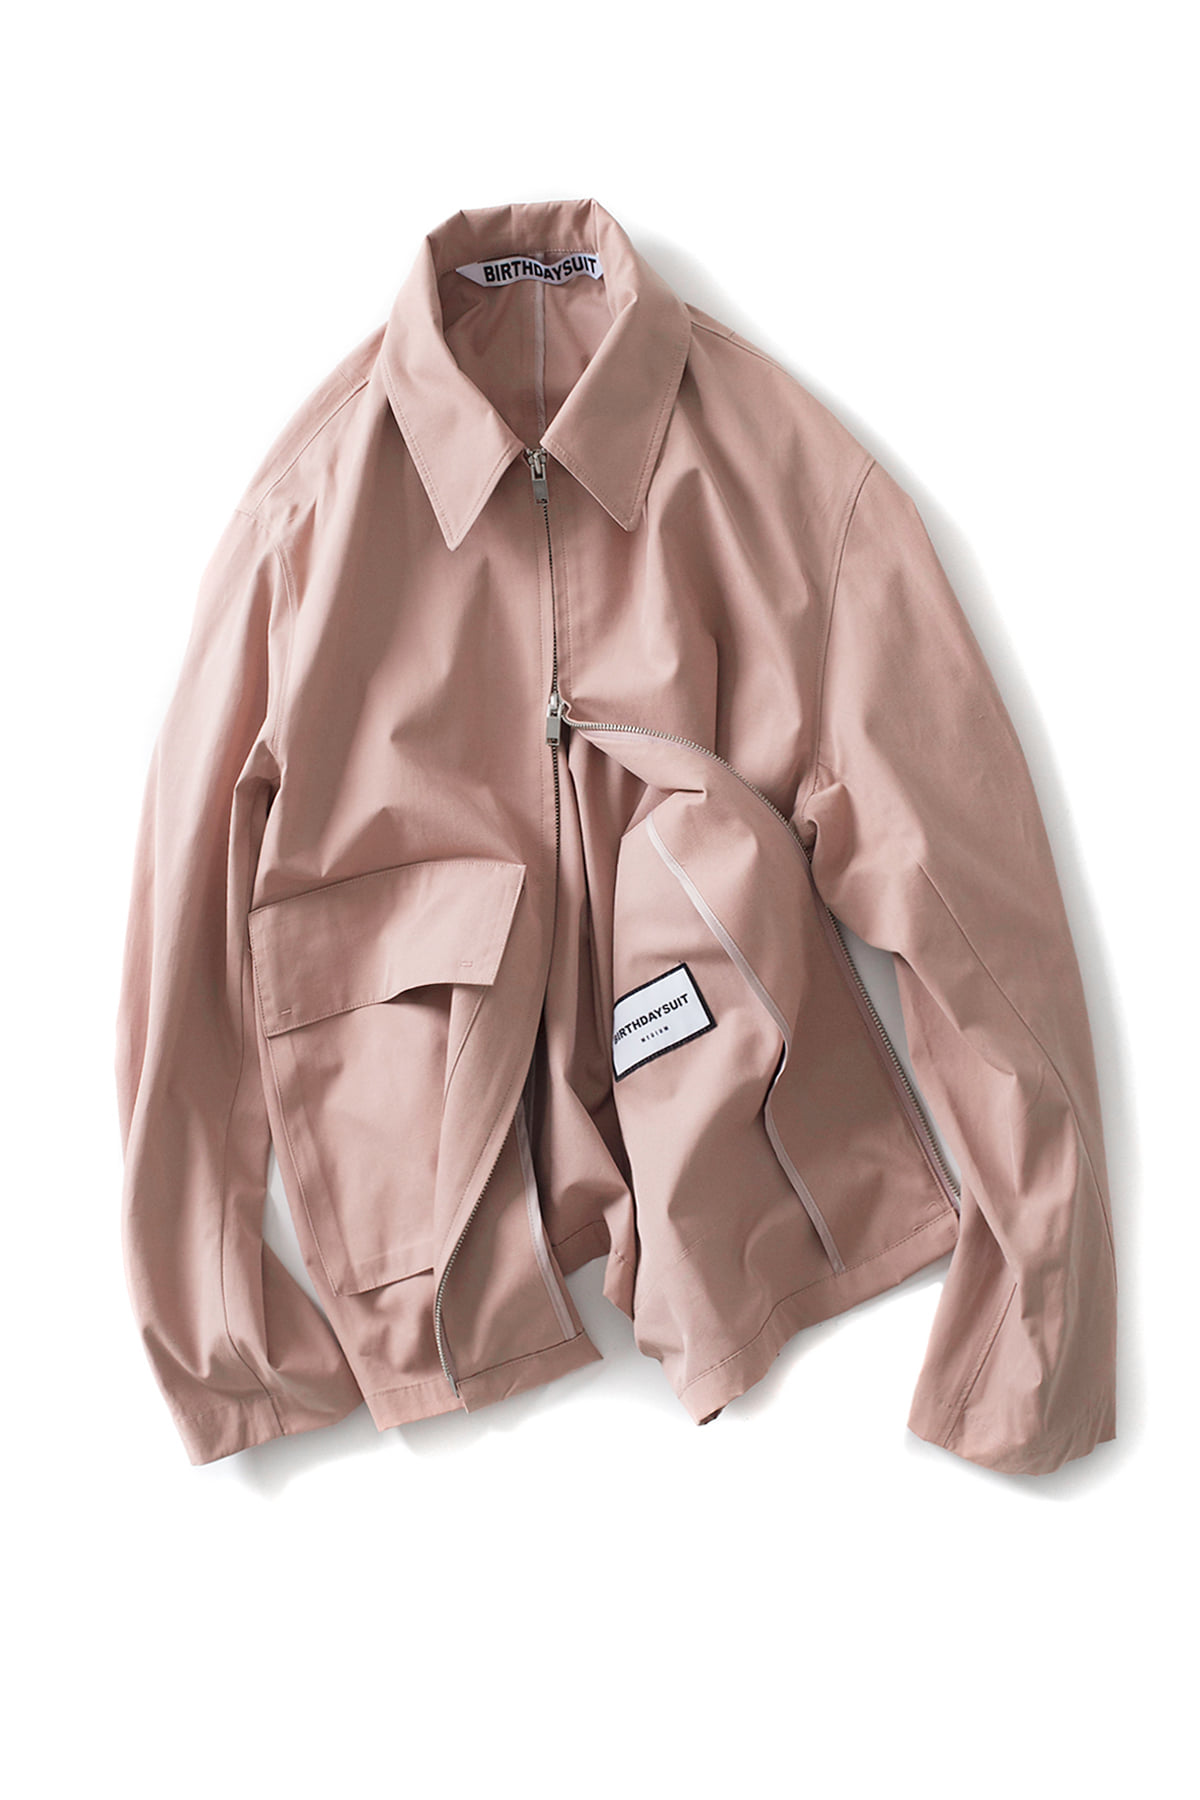 BIRTHDAYSUIT : Oversized Blouson(Antique Pink)